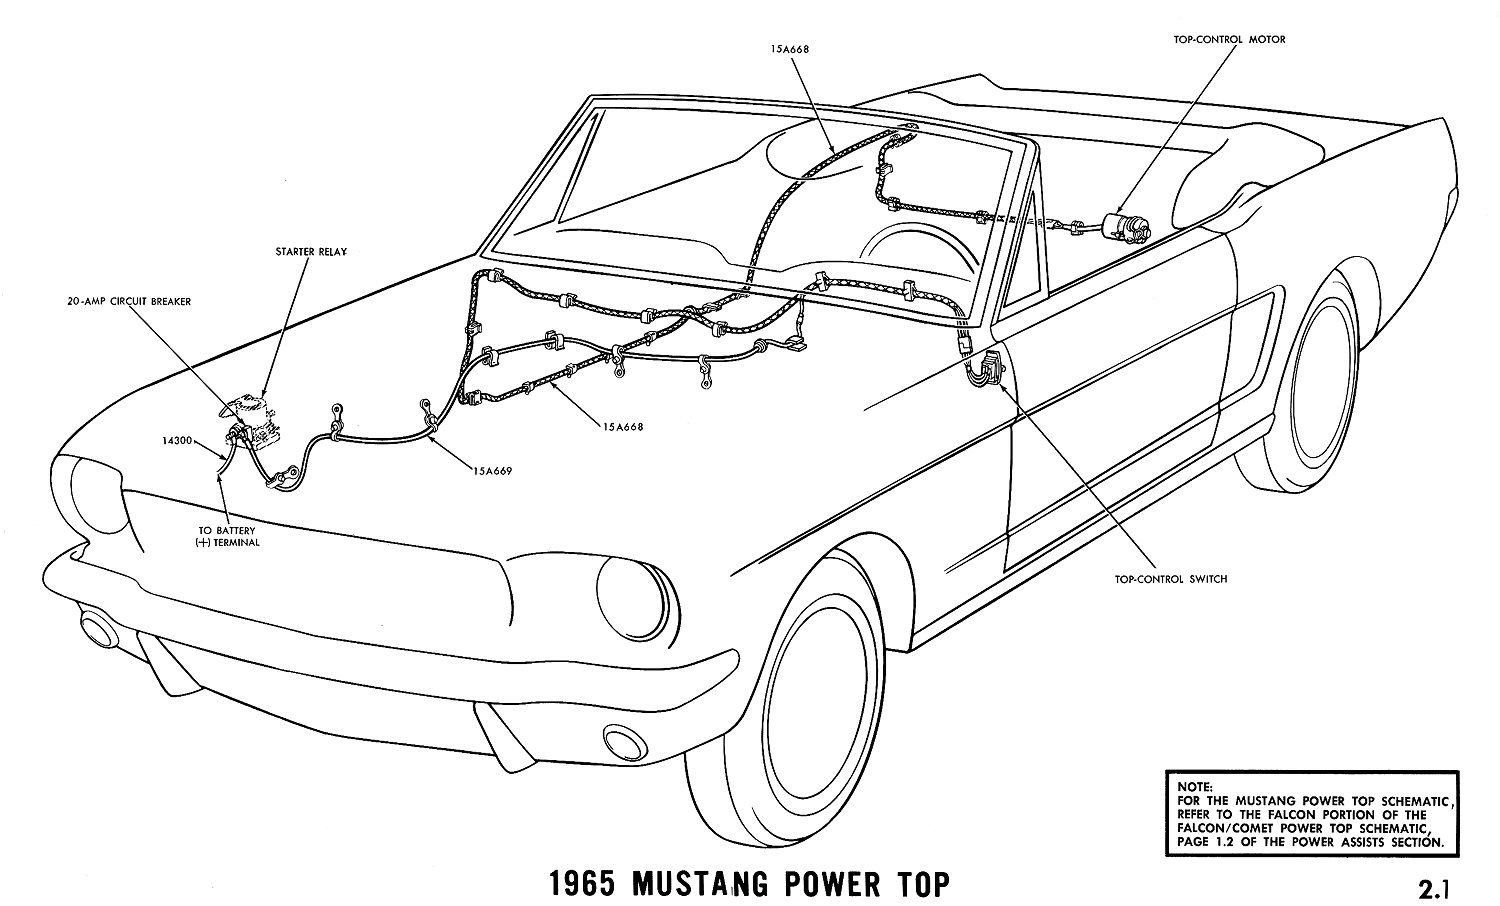 1965 ford mustang fuse box diagram wiring schematic 02 ford e150 fuse box diagram wiring schematic 1965 mustang wiring diagrams - average joe restoration #8